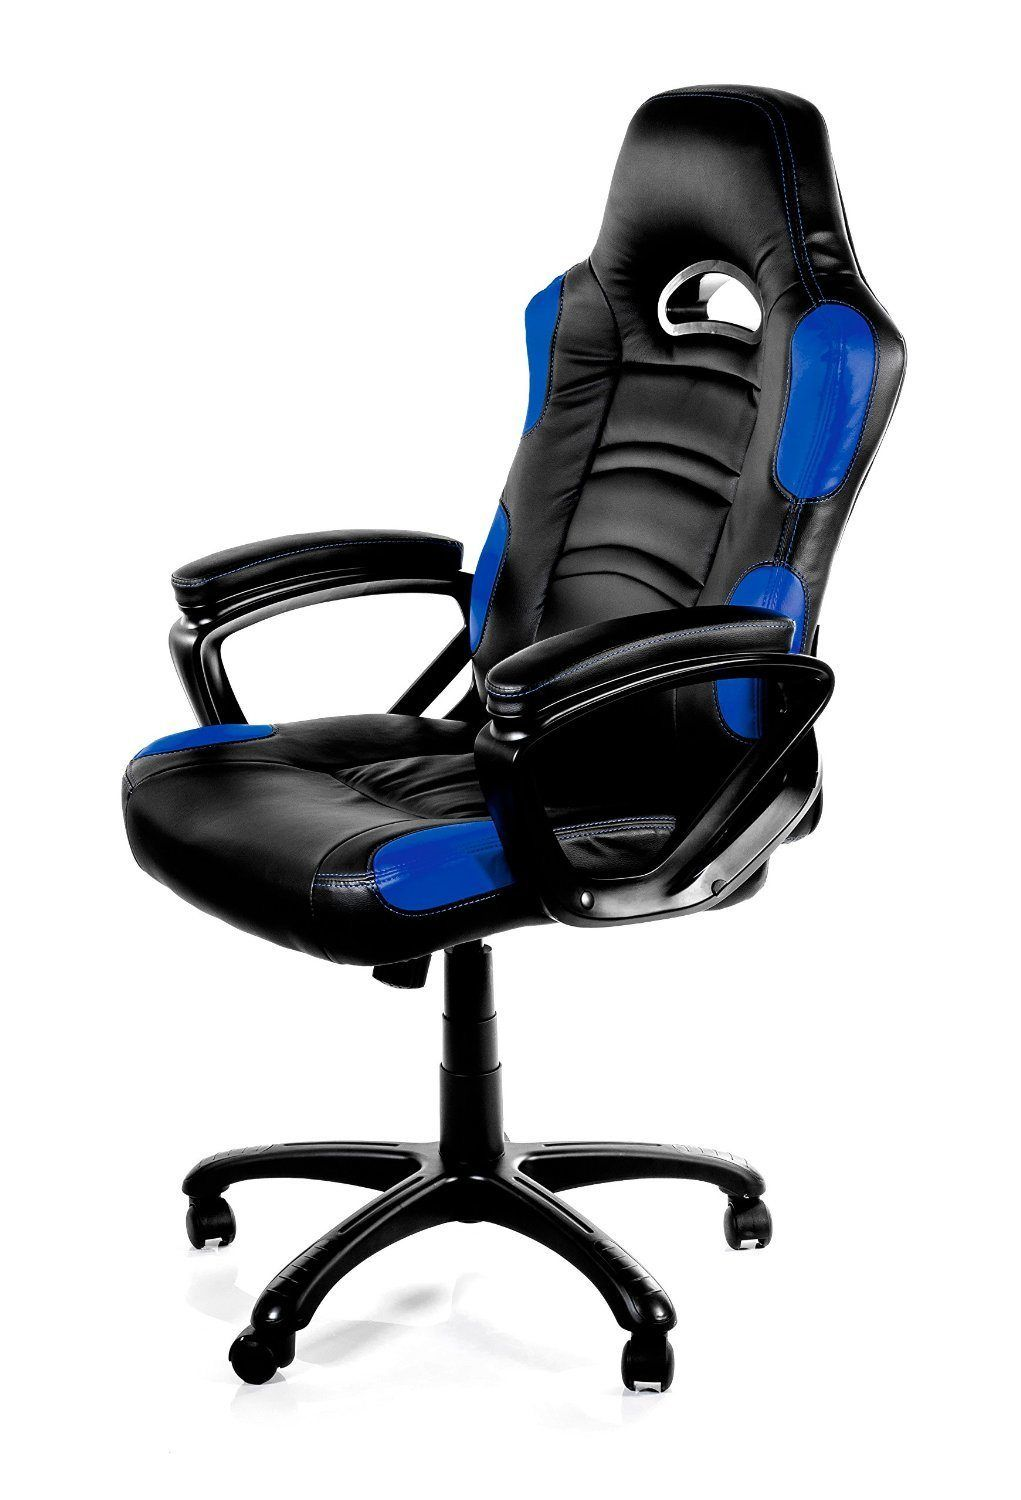 arozzi enzo series gaming chair - pc gaming chairs | 拆哎